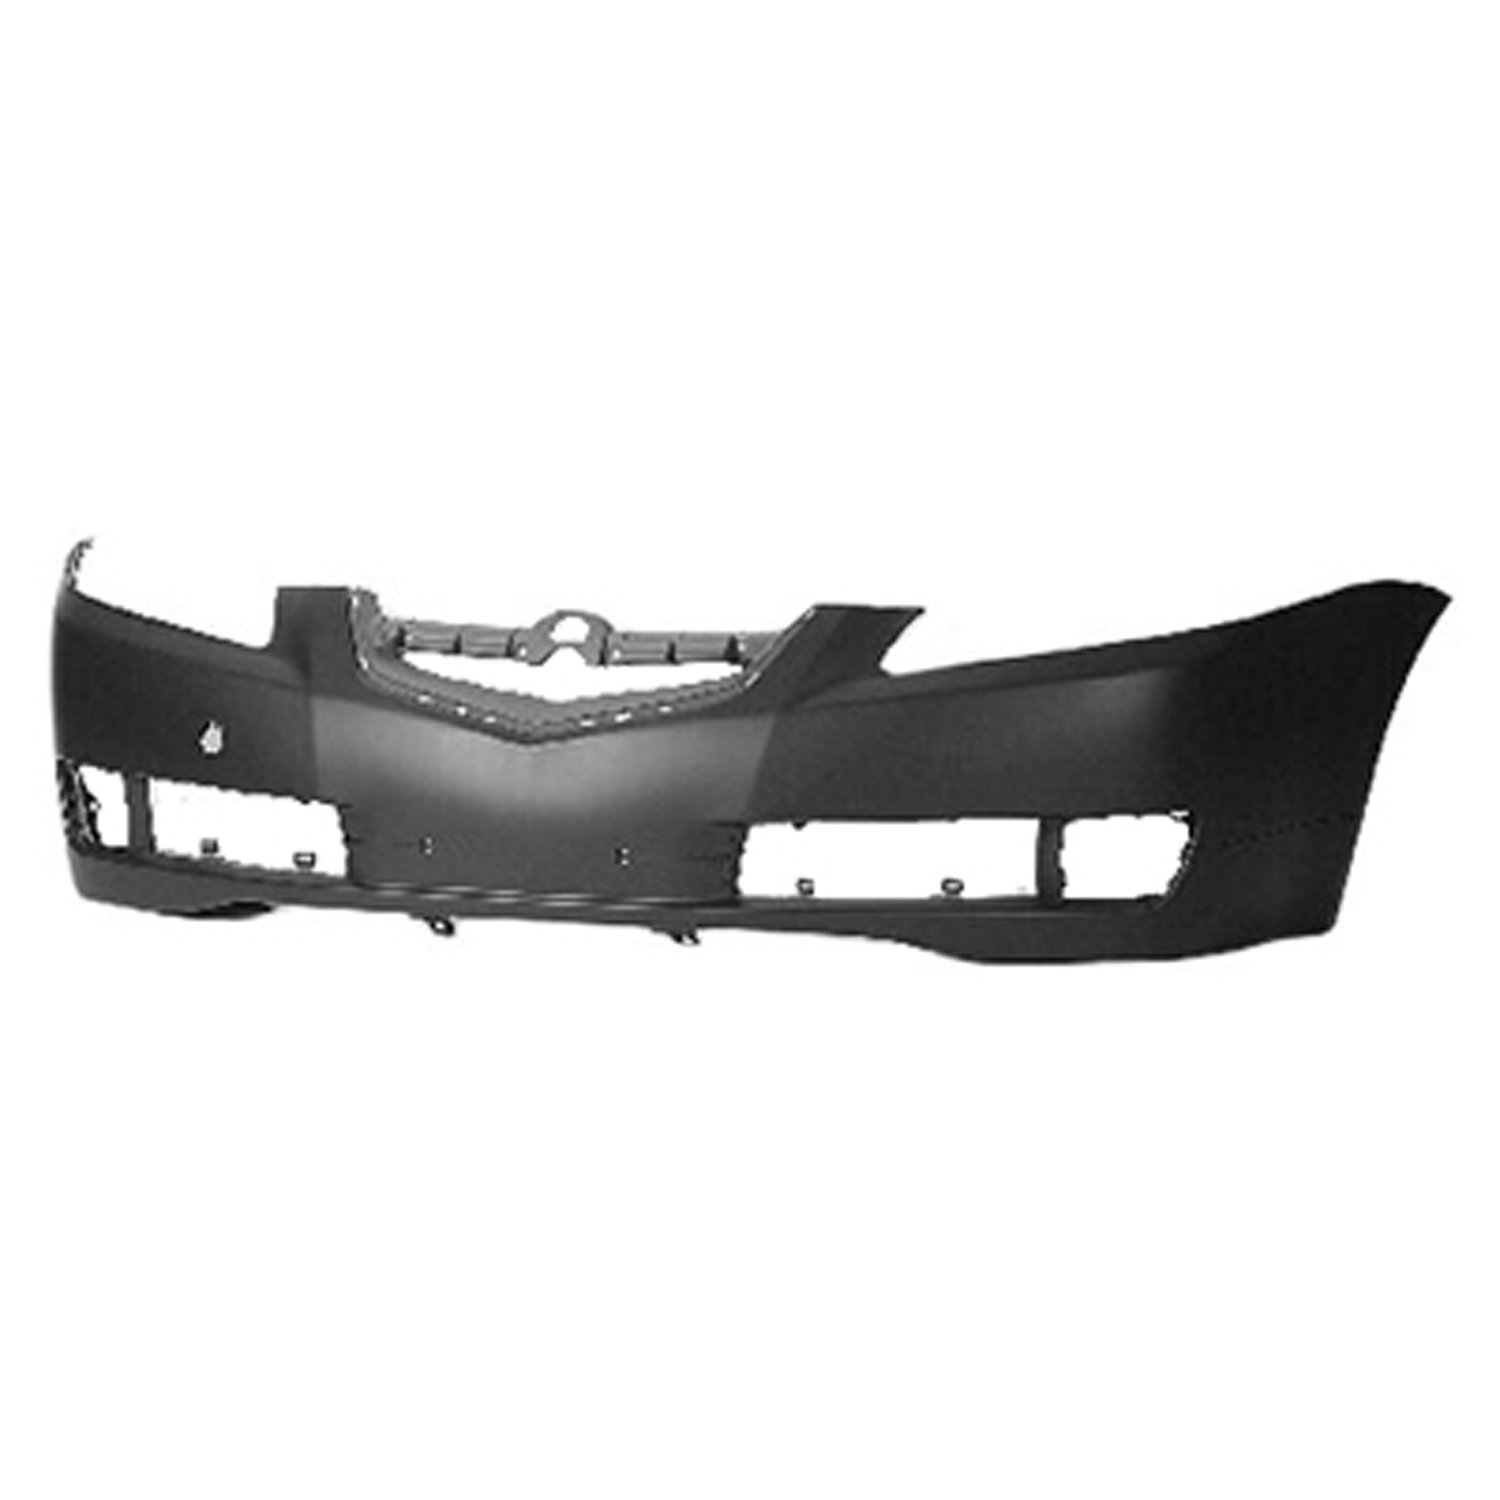 Crash Parts Plus Crash Parts Plus Front Bumper Cover for 2007-2008 Acura TL AC1000160